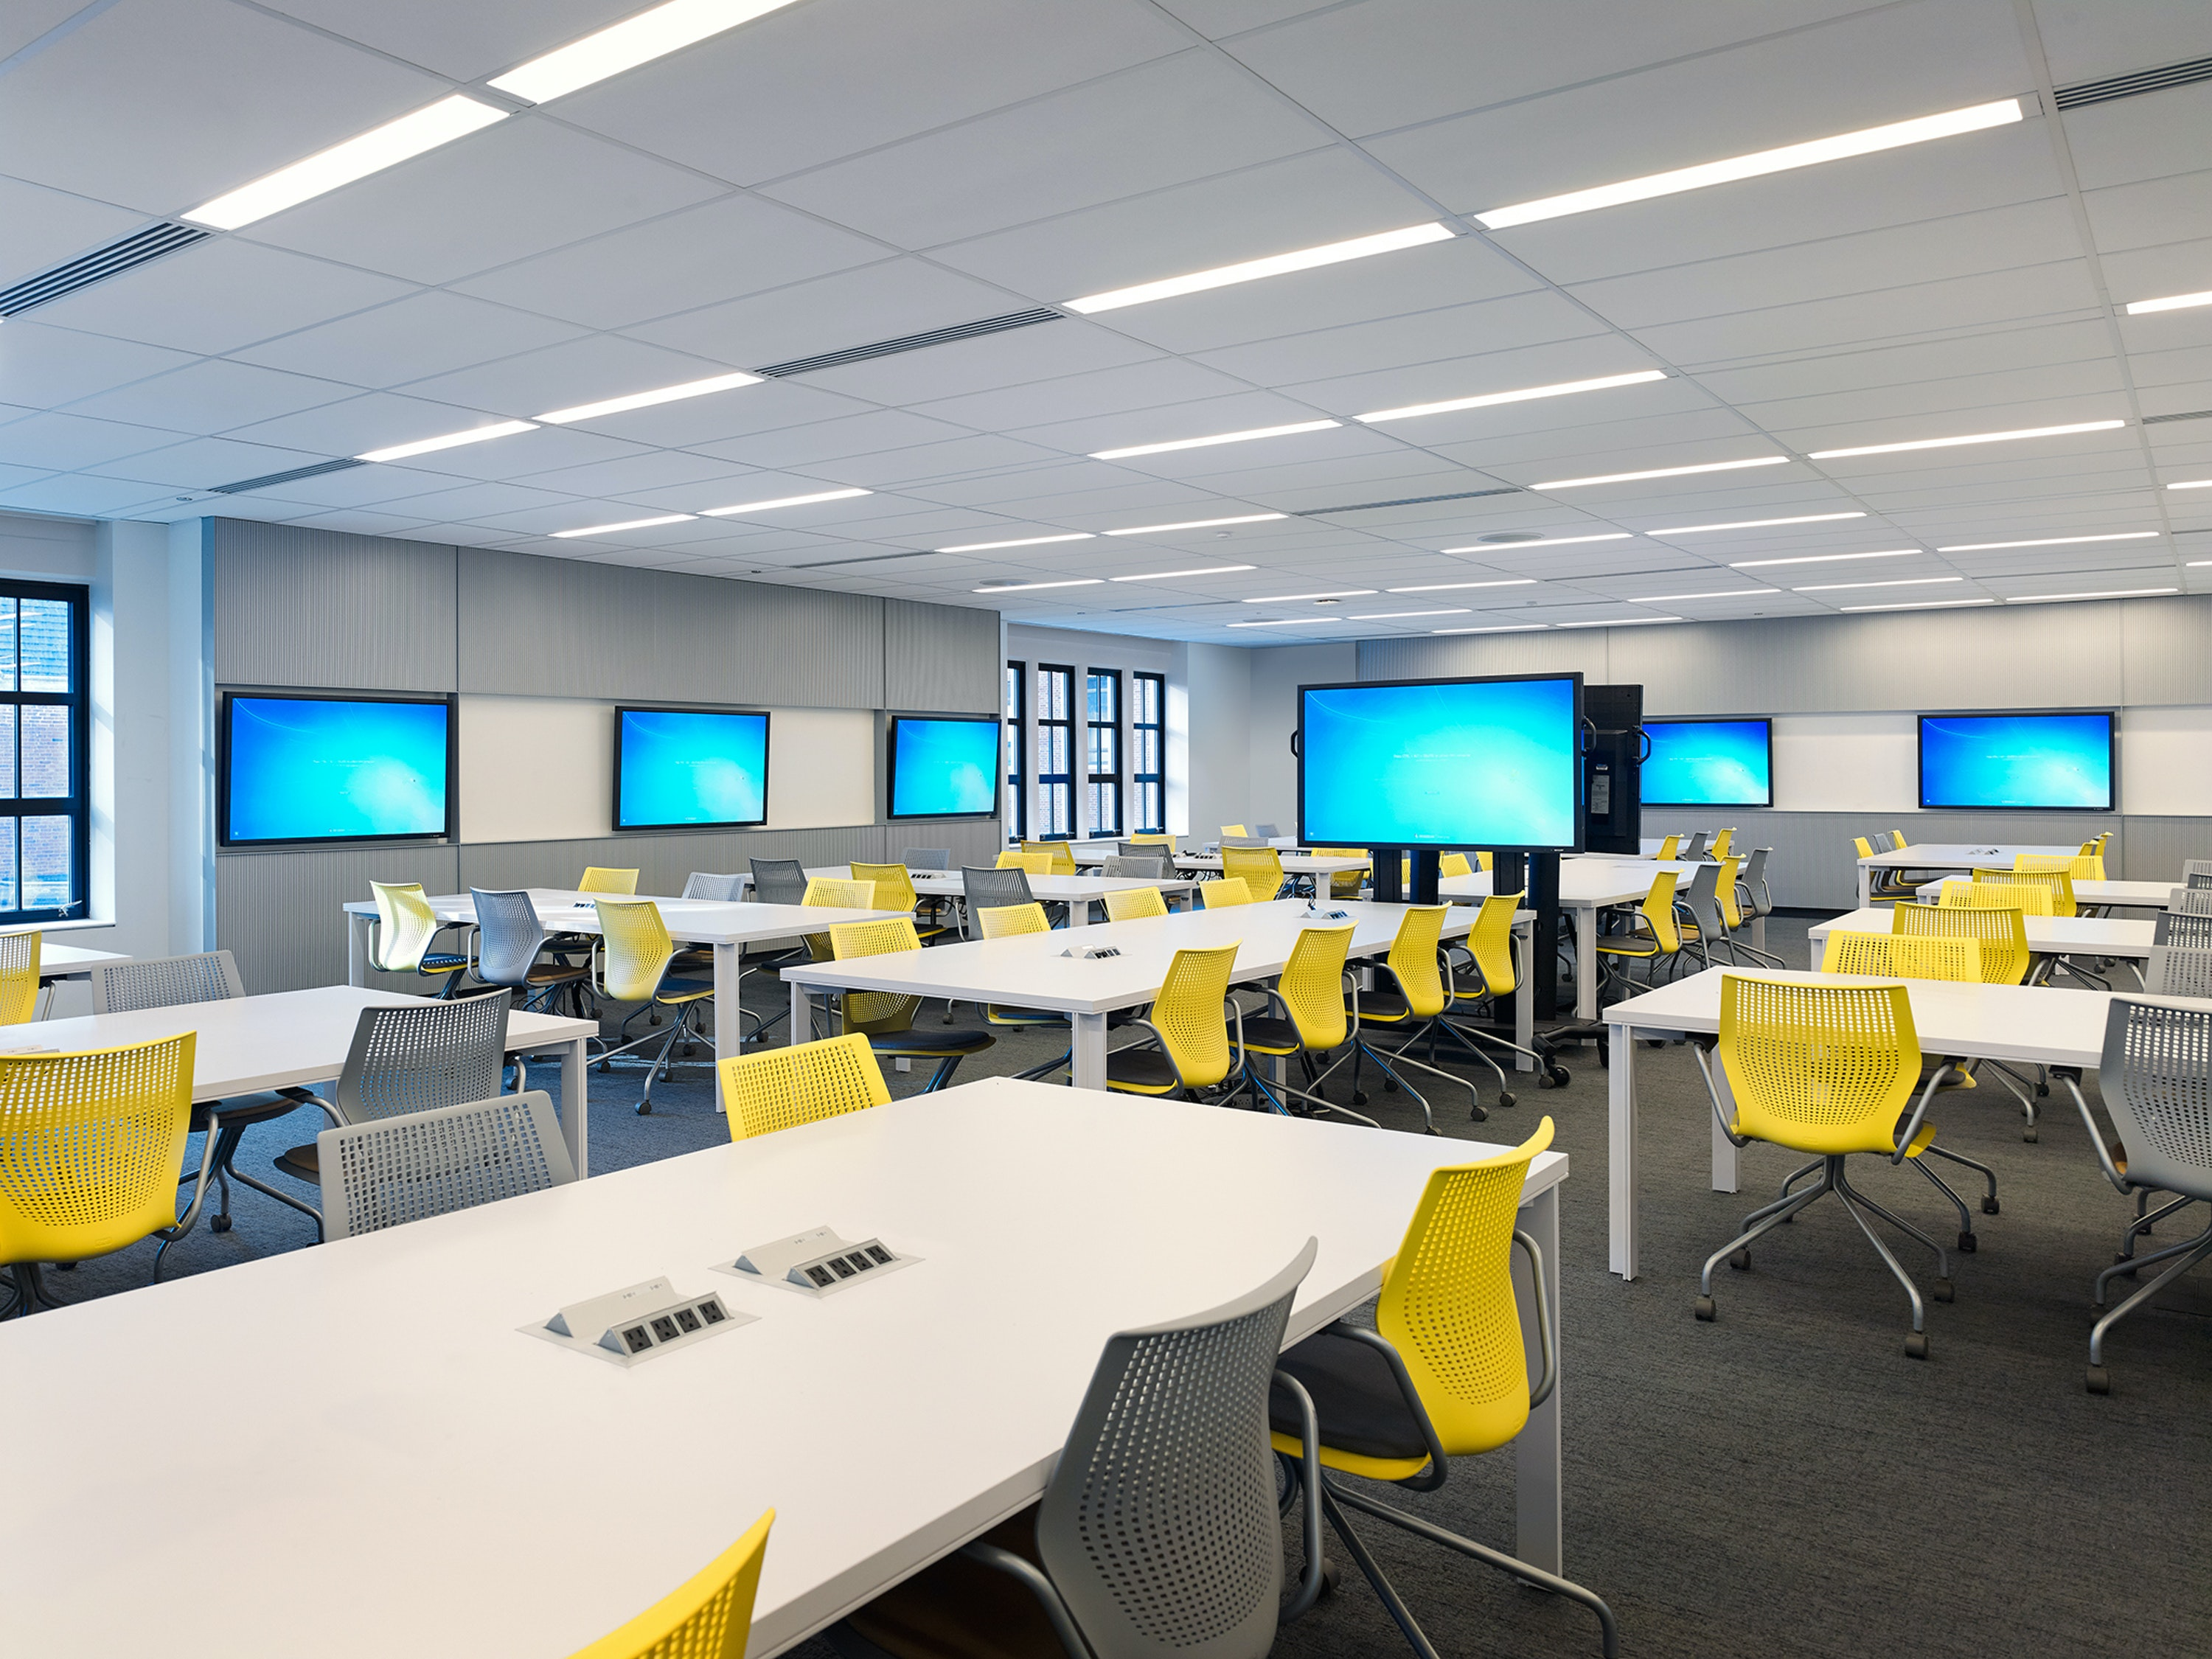 UIC College of Medicine Learning Center 04